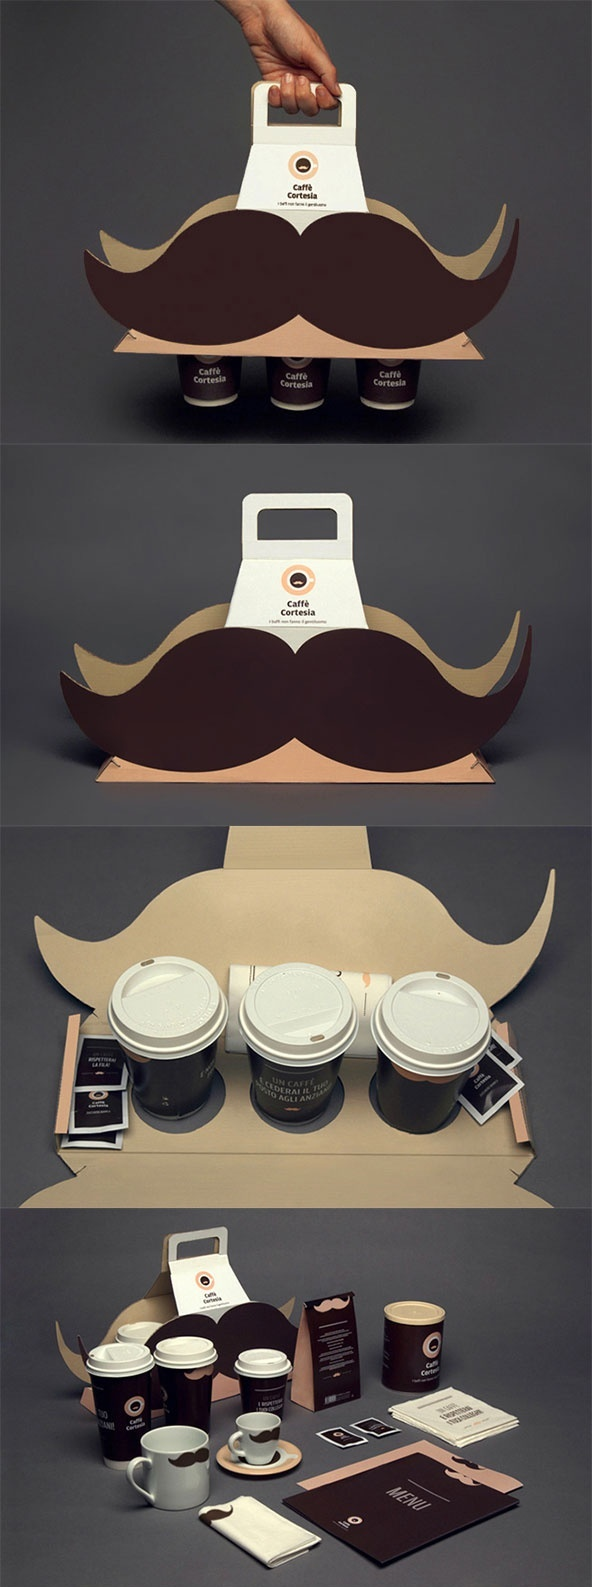 hipster products2